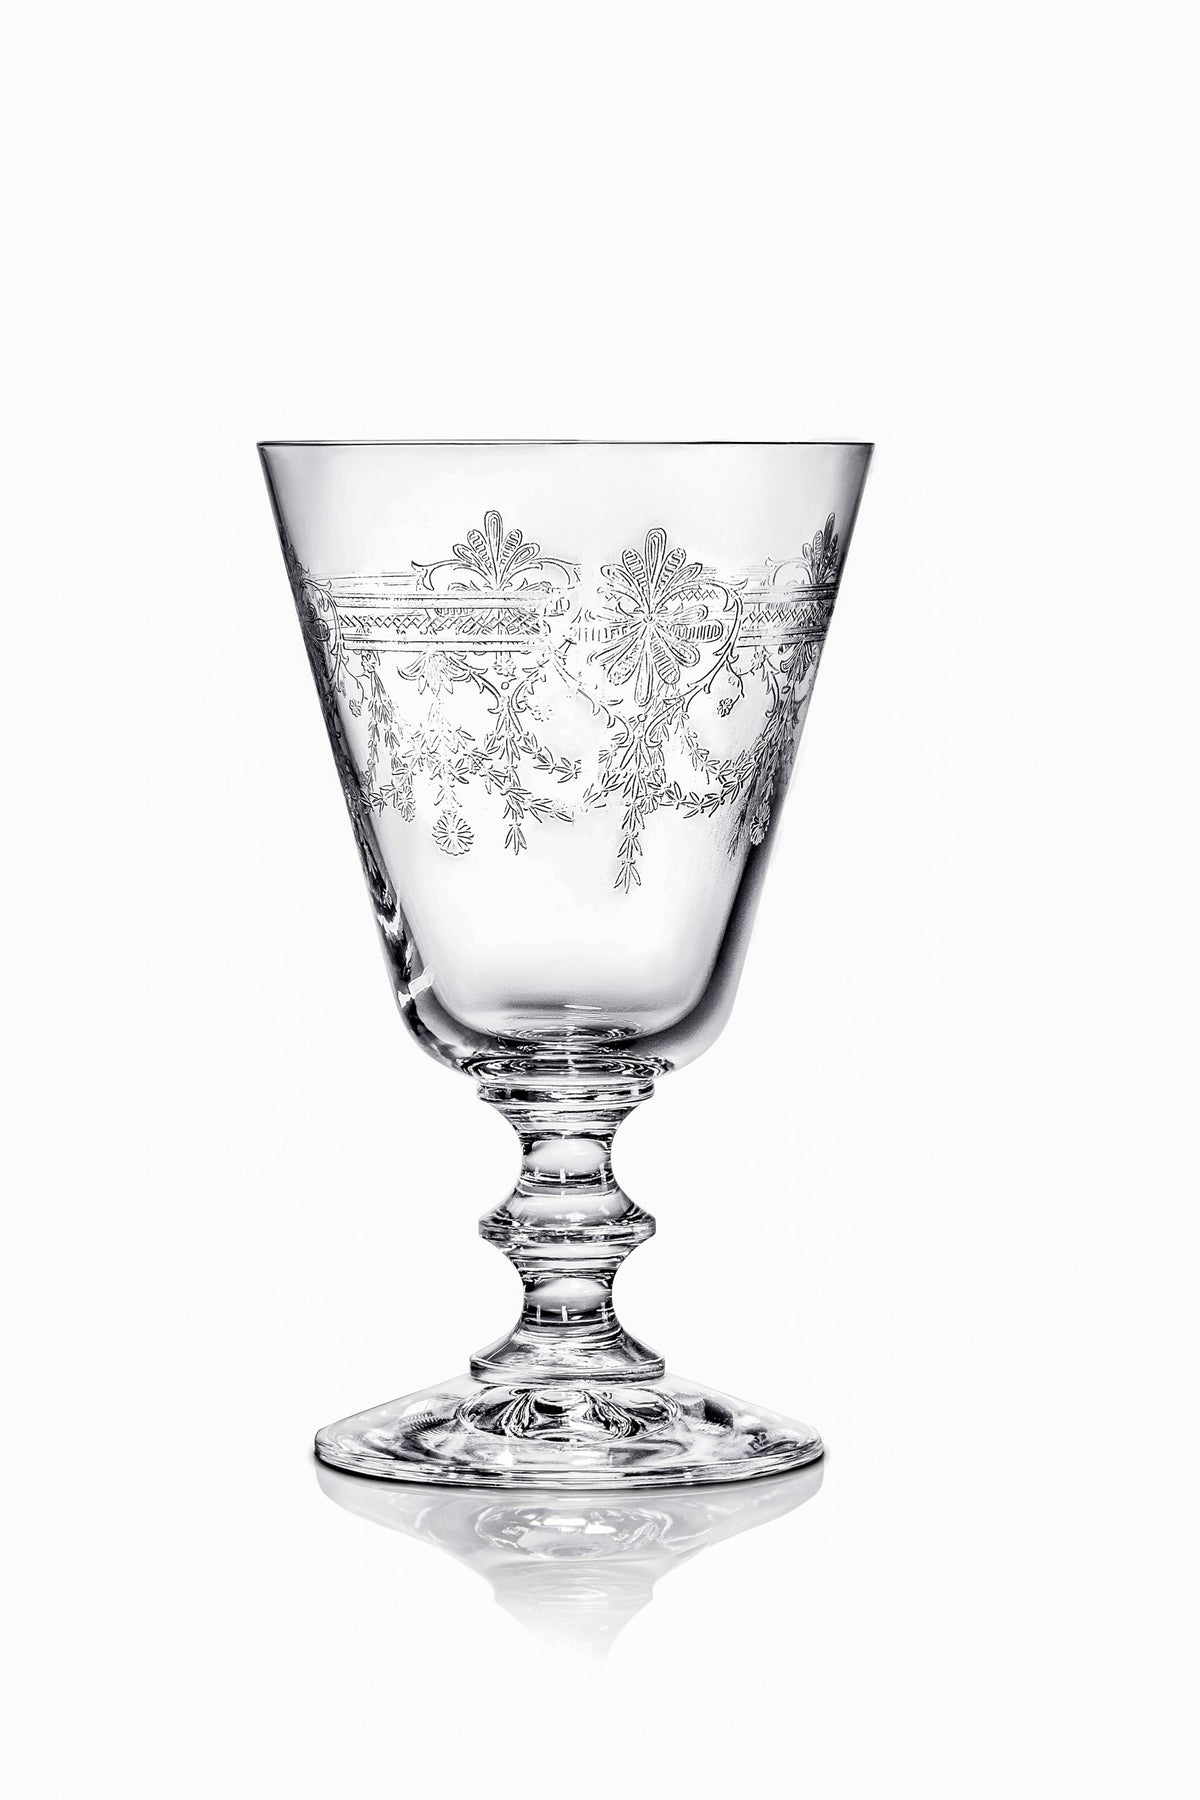 Victorian Rustic Wine Glasses - Set of 6